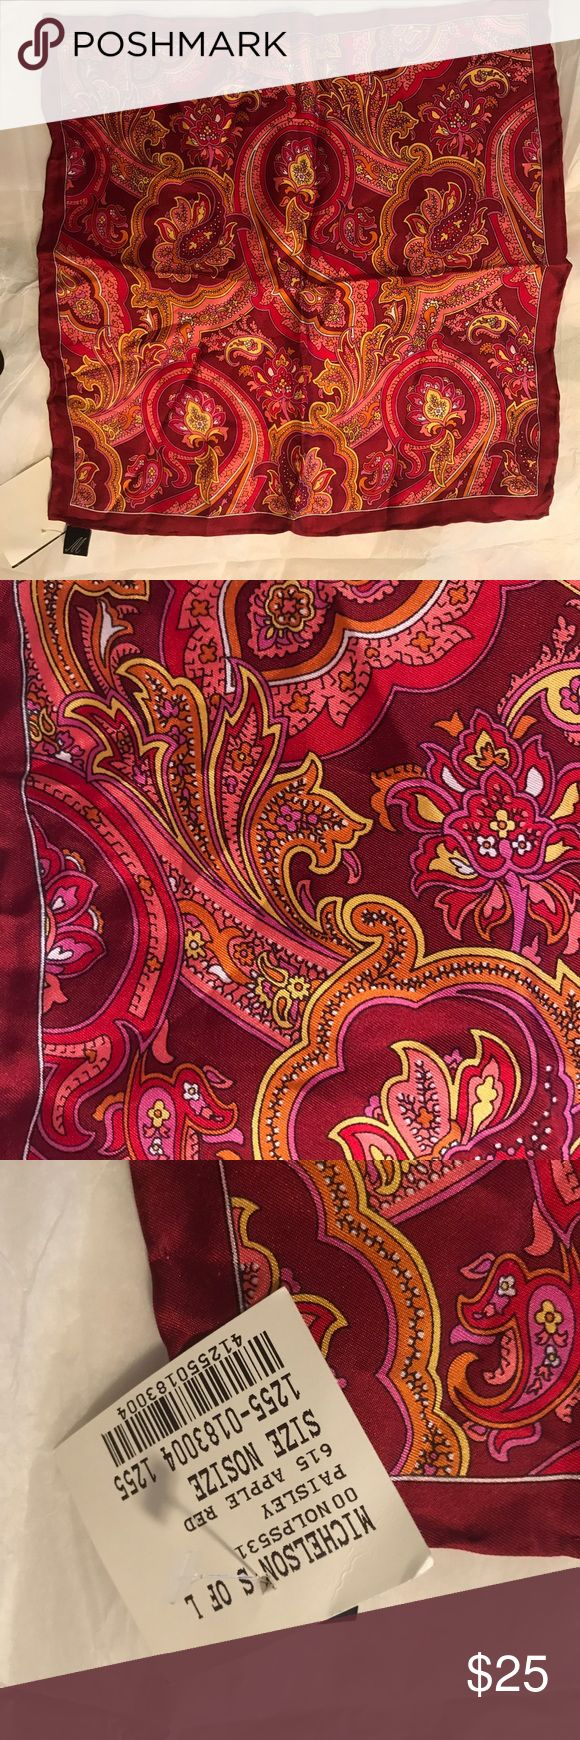 Michelson Silk Woven Pocket Paisley Red Square NWT Silk pocket square, paisley apple red Michelson's Accessories Pocket Squares